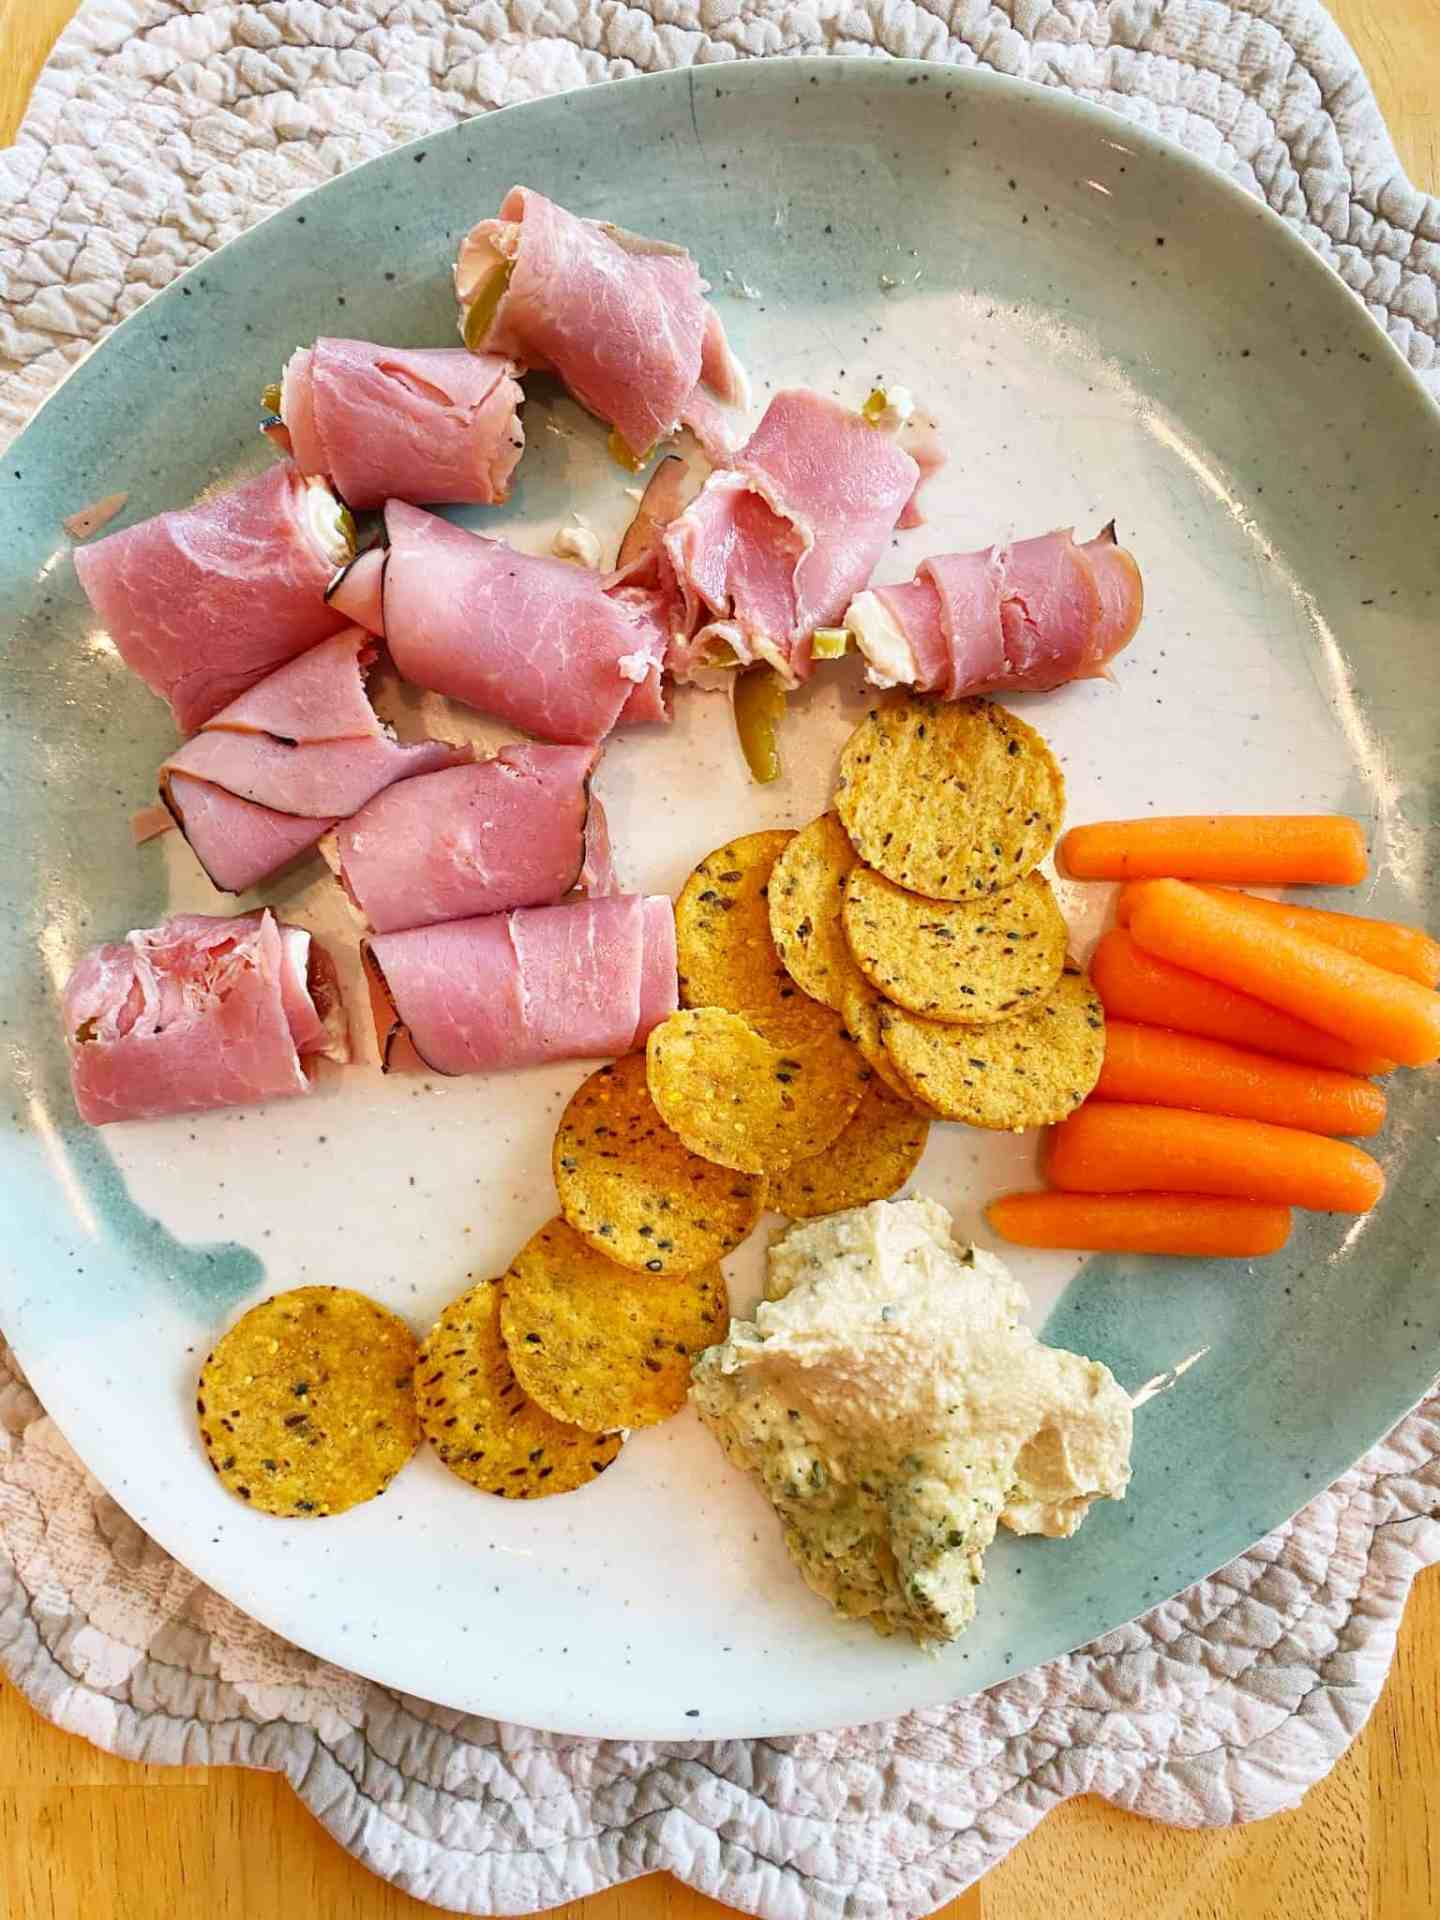 Easy-Healthy-Lunch-Ideas-Ham-Cream-Cheese-Jalapeno-Roll-Ups